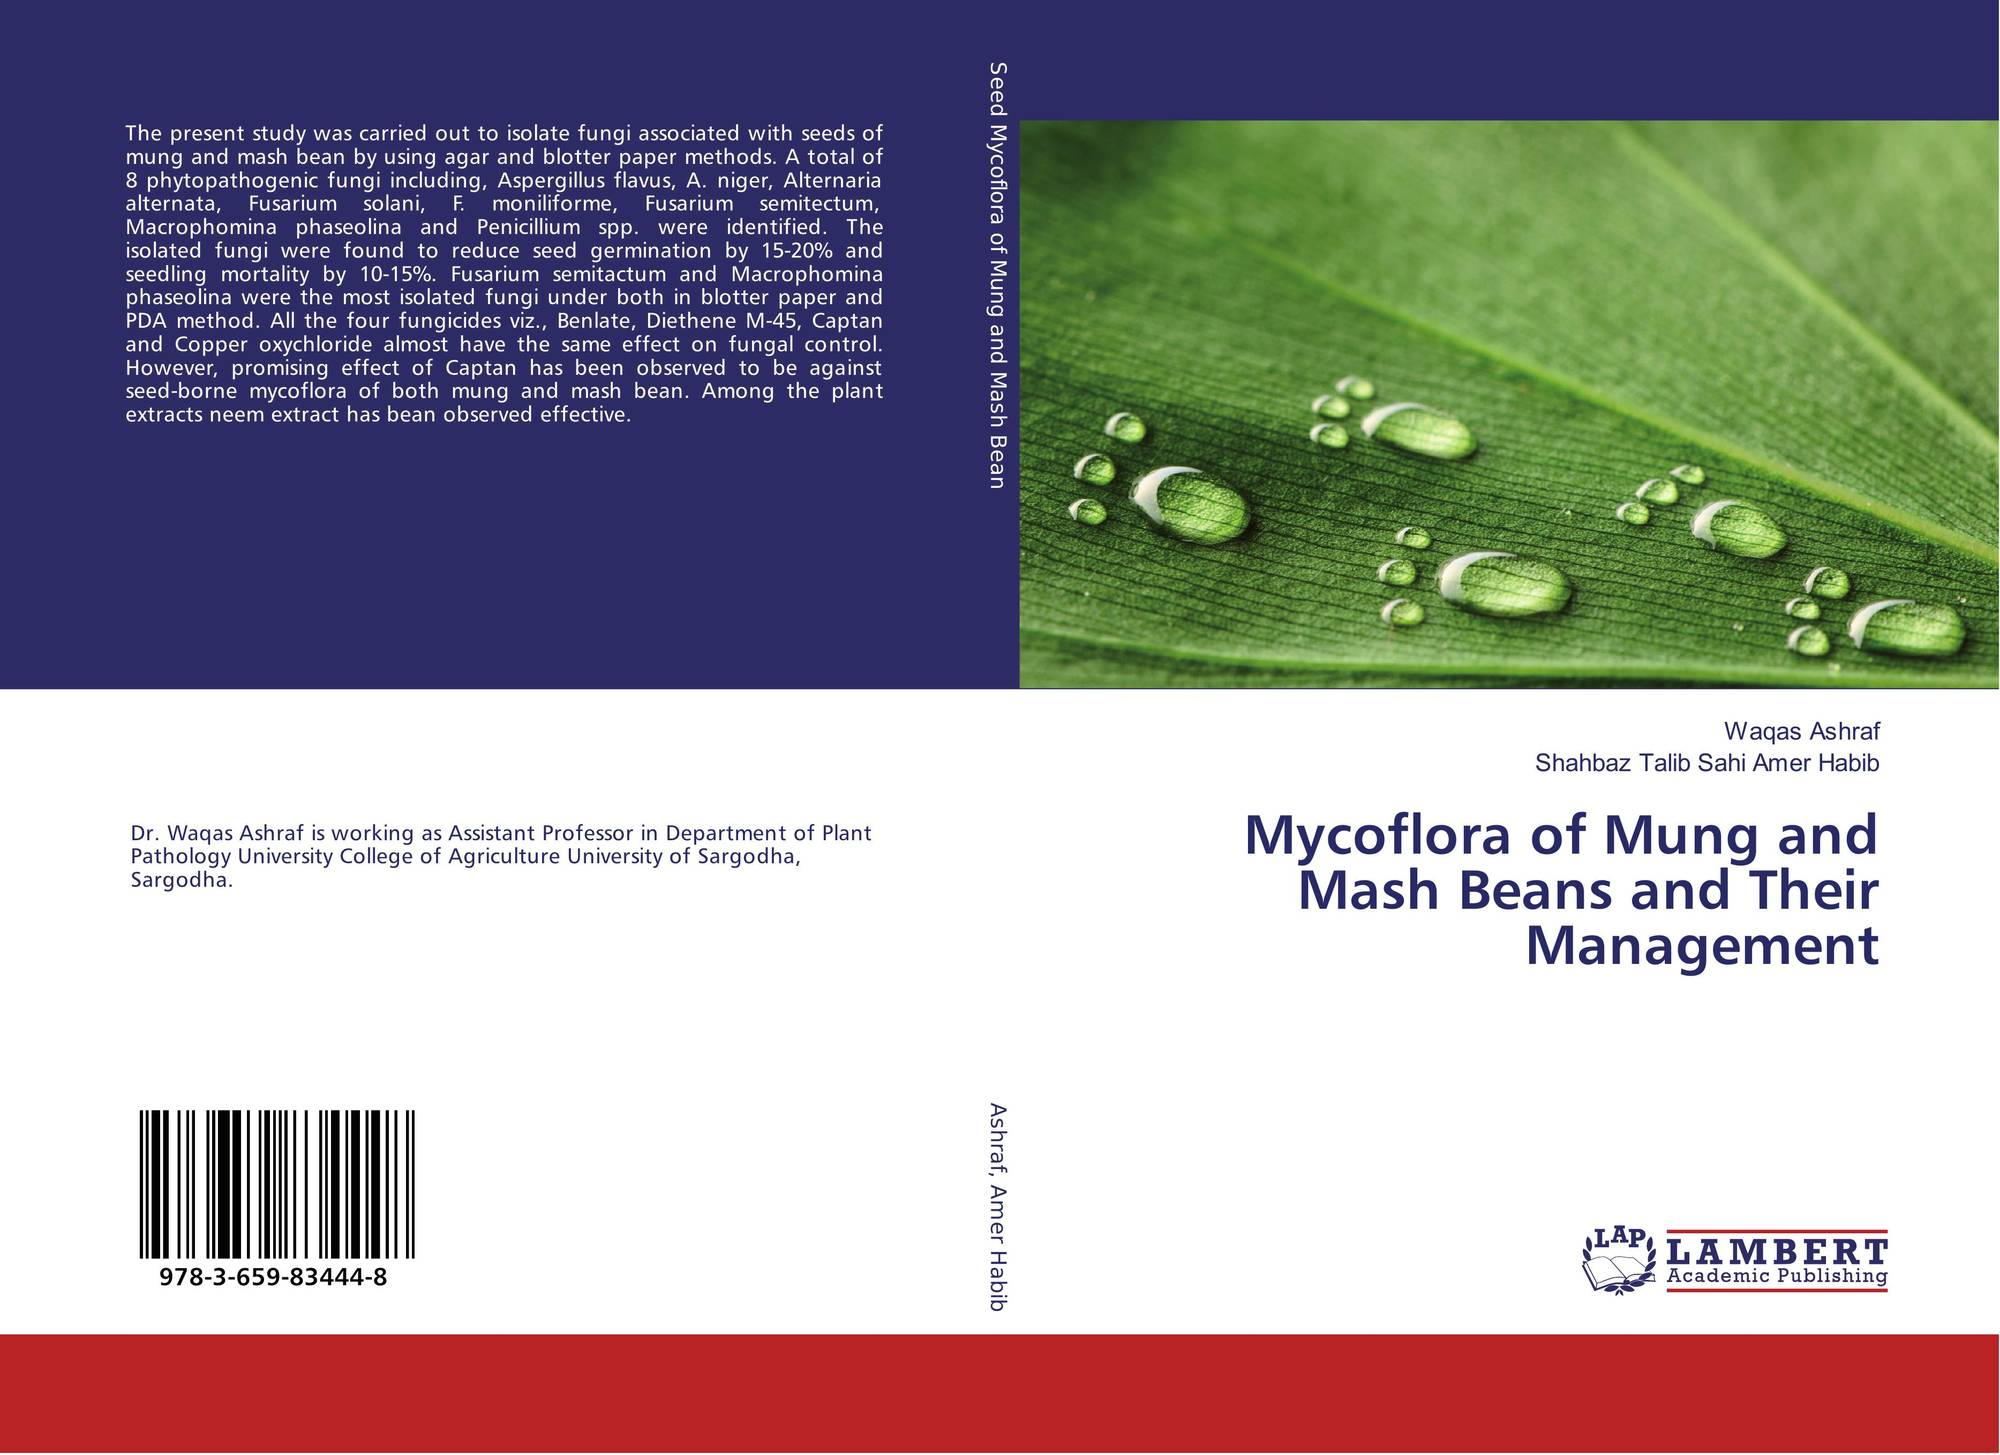 review of related literature and studies of mung beans (the effect of ph on mung beans (related): literature review on cognitive labor labor studies language literature macbeth management.